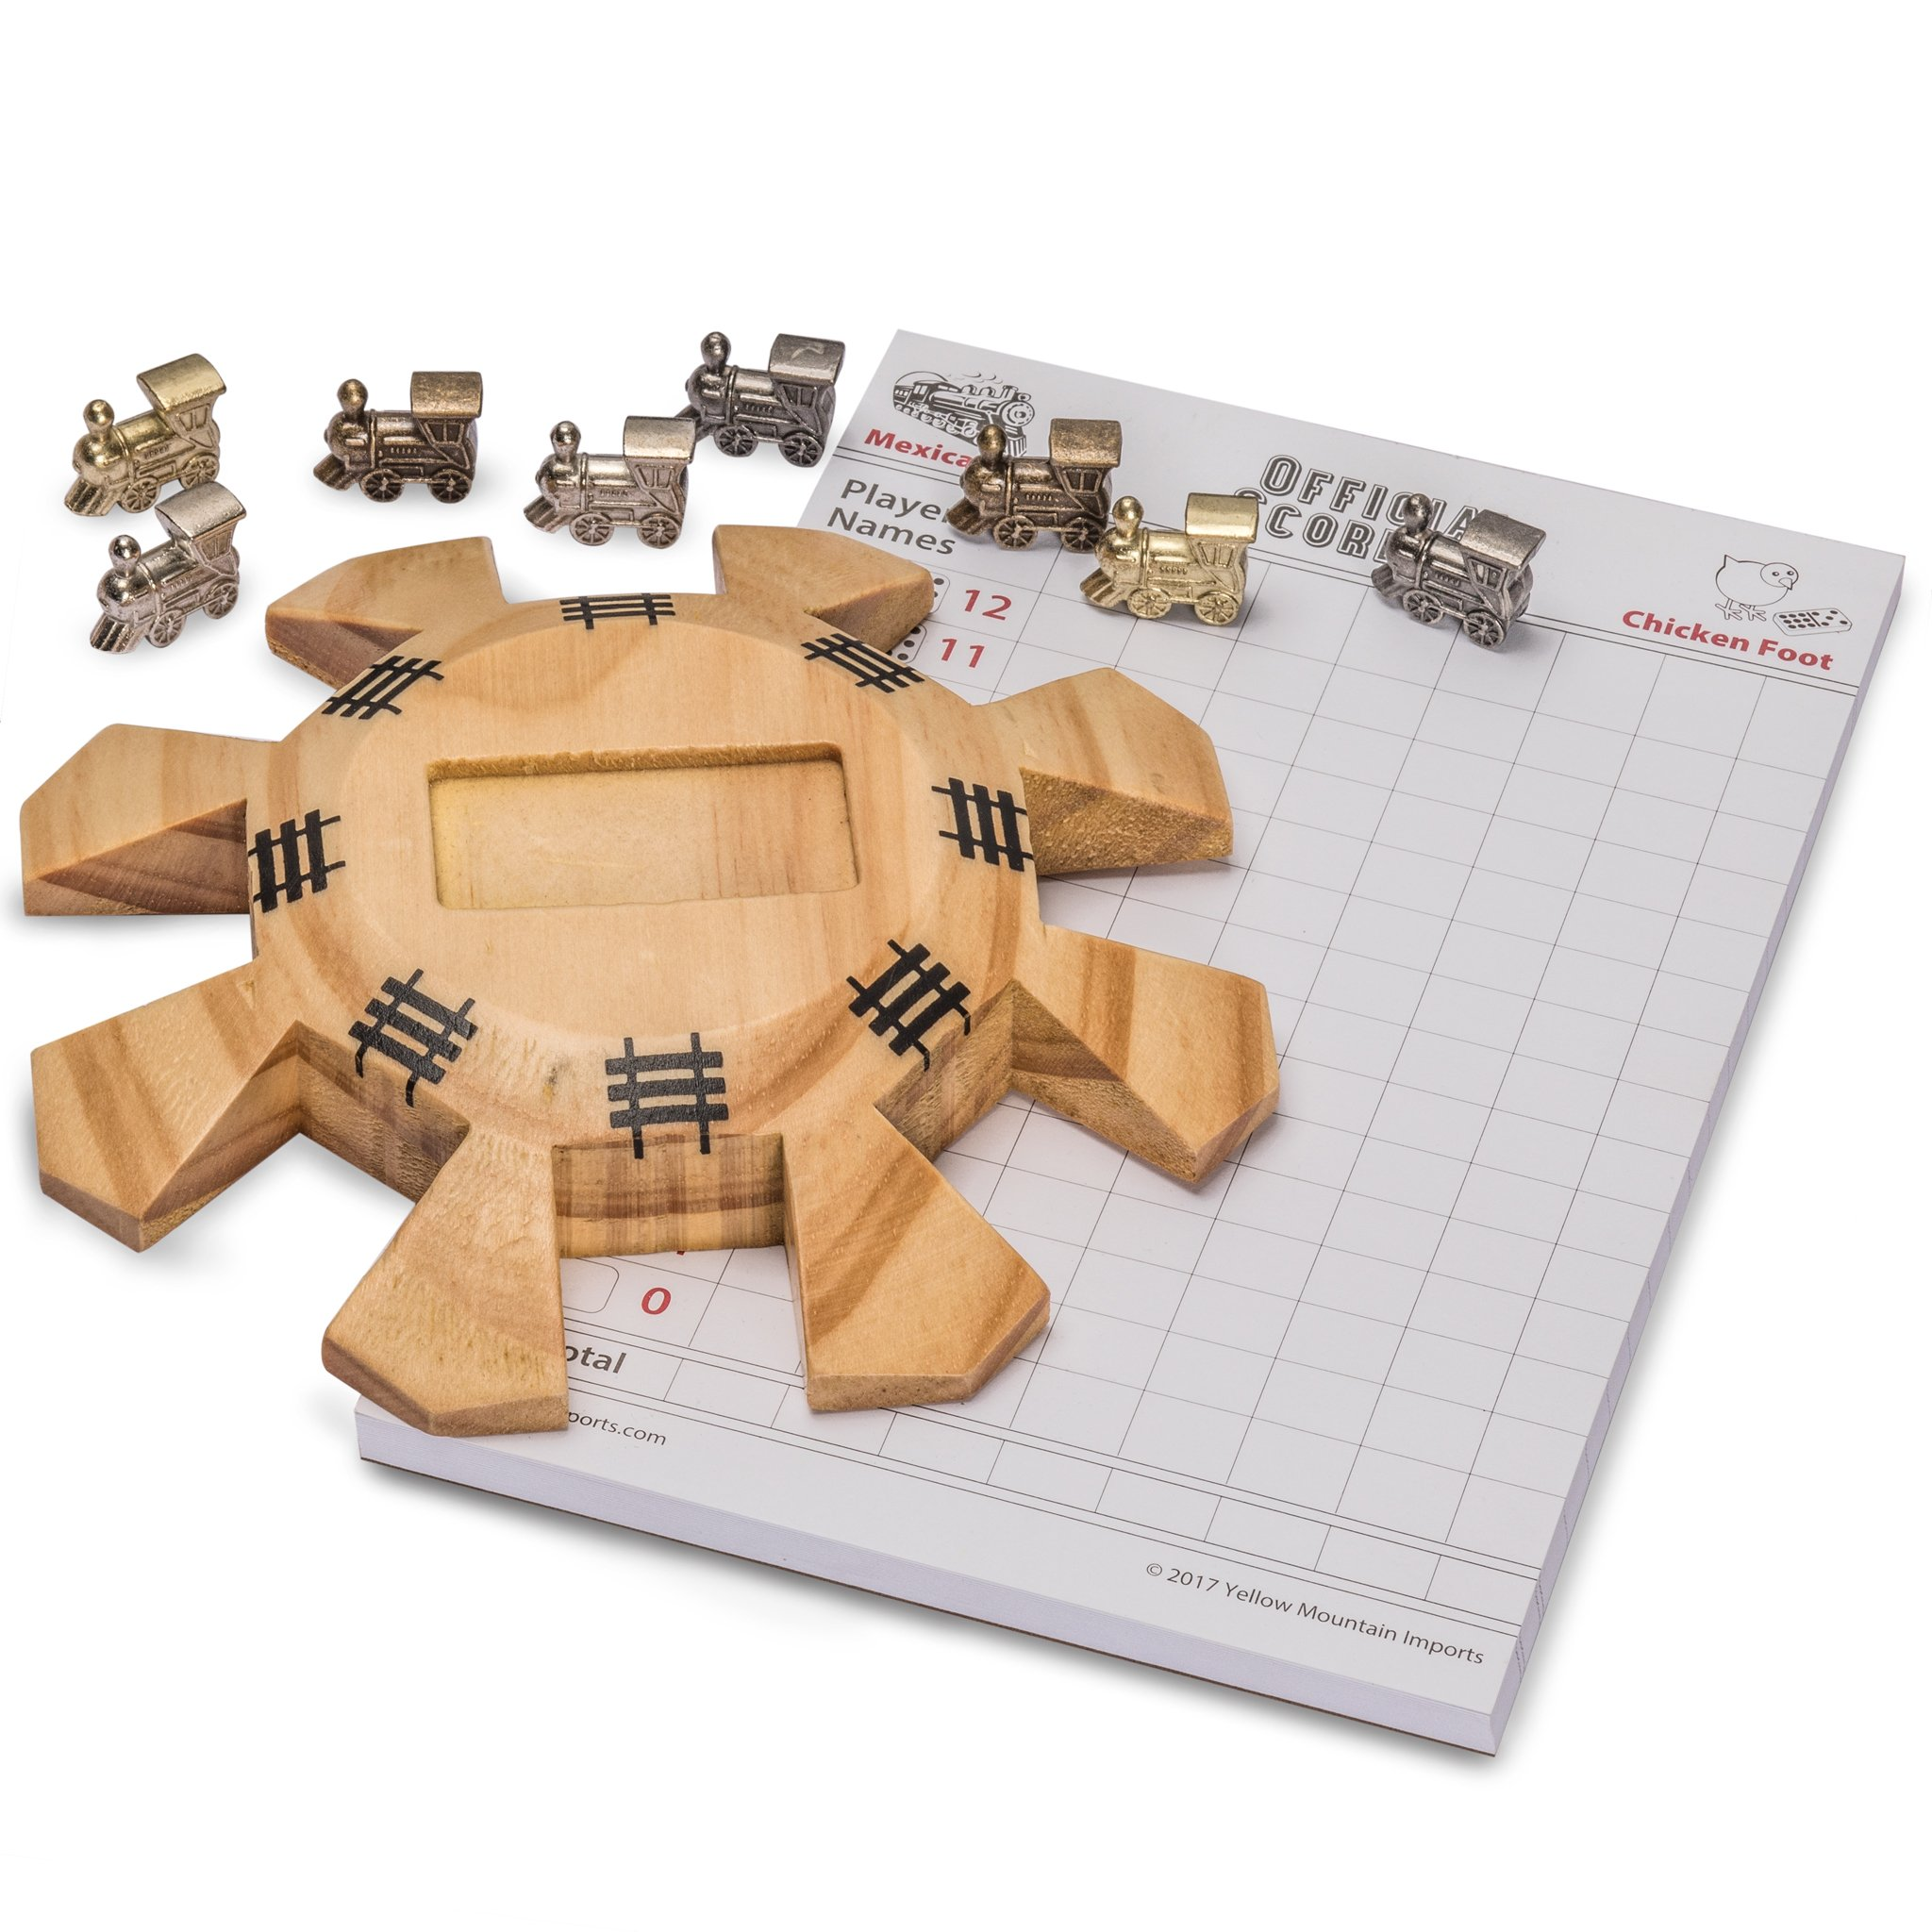 Mexican Train Dominoes | Chicken Foot Dominoes Accessory Set, Hub, Train Markers, Scorepad, Instruction Manual for Mexican Train